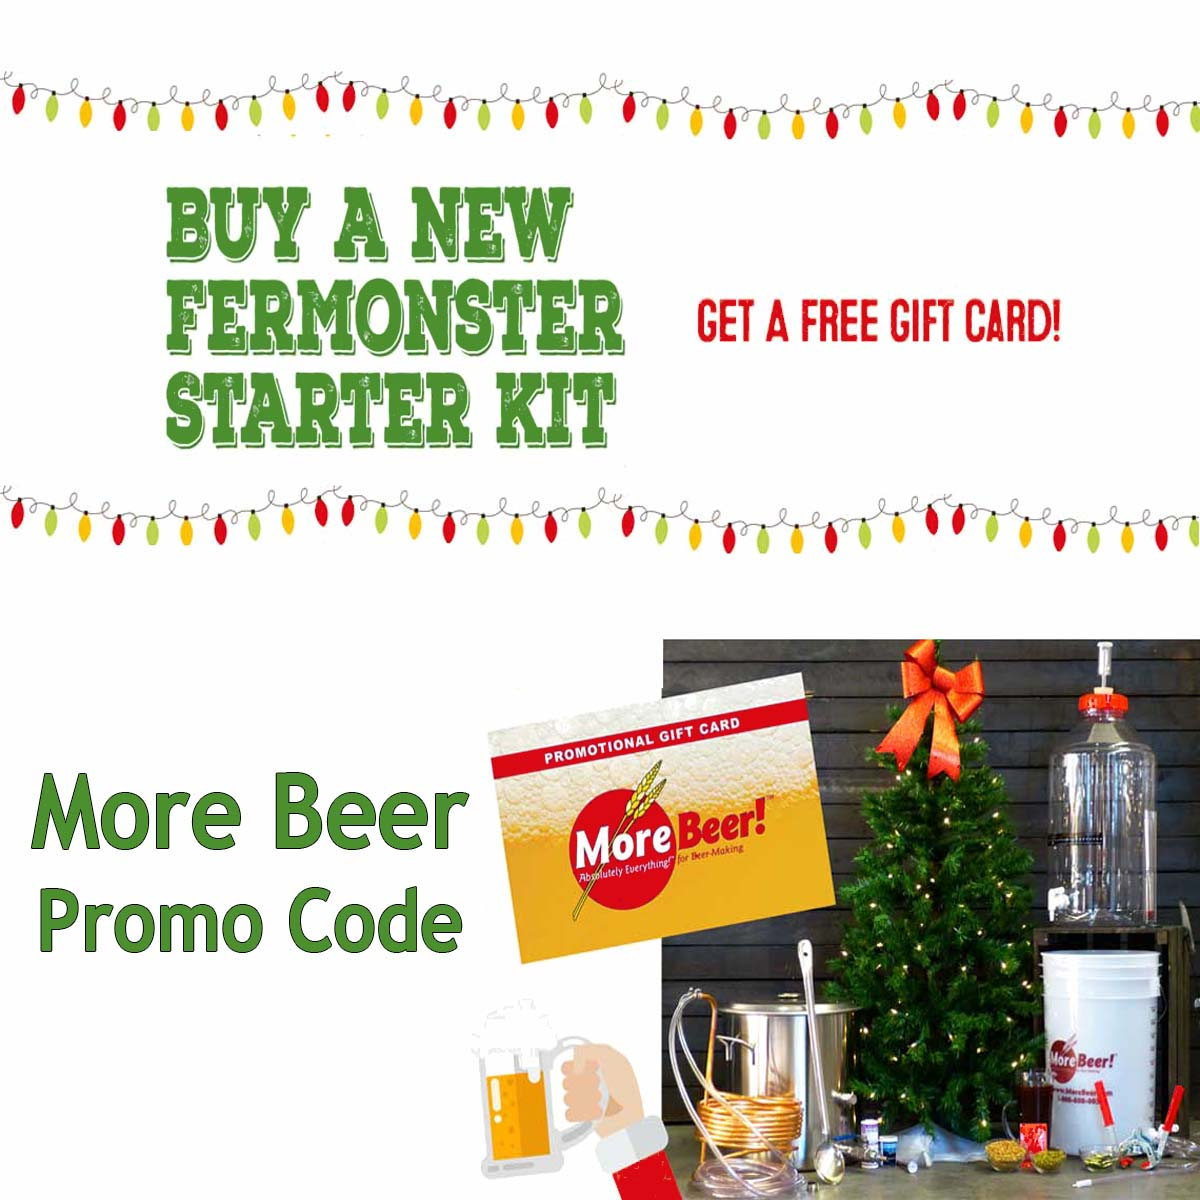 Buy a Home Beer Brewing Kit and Get A Free $20 Gift Card Coupon Code